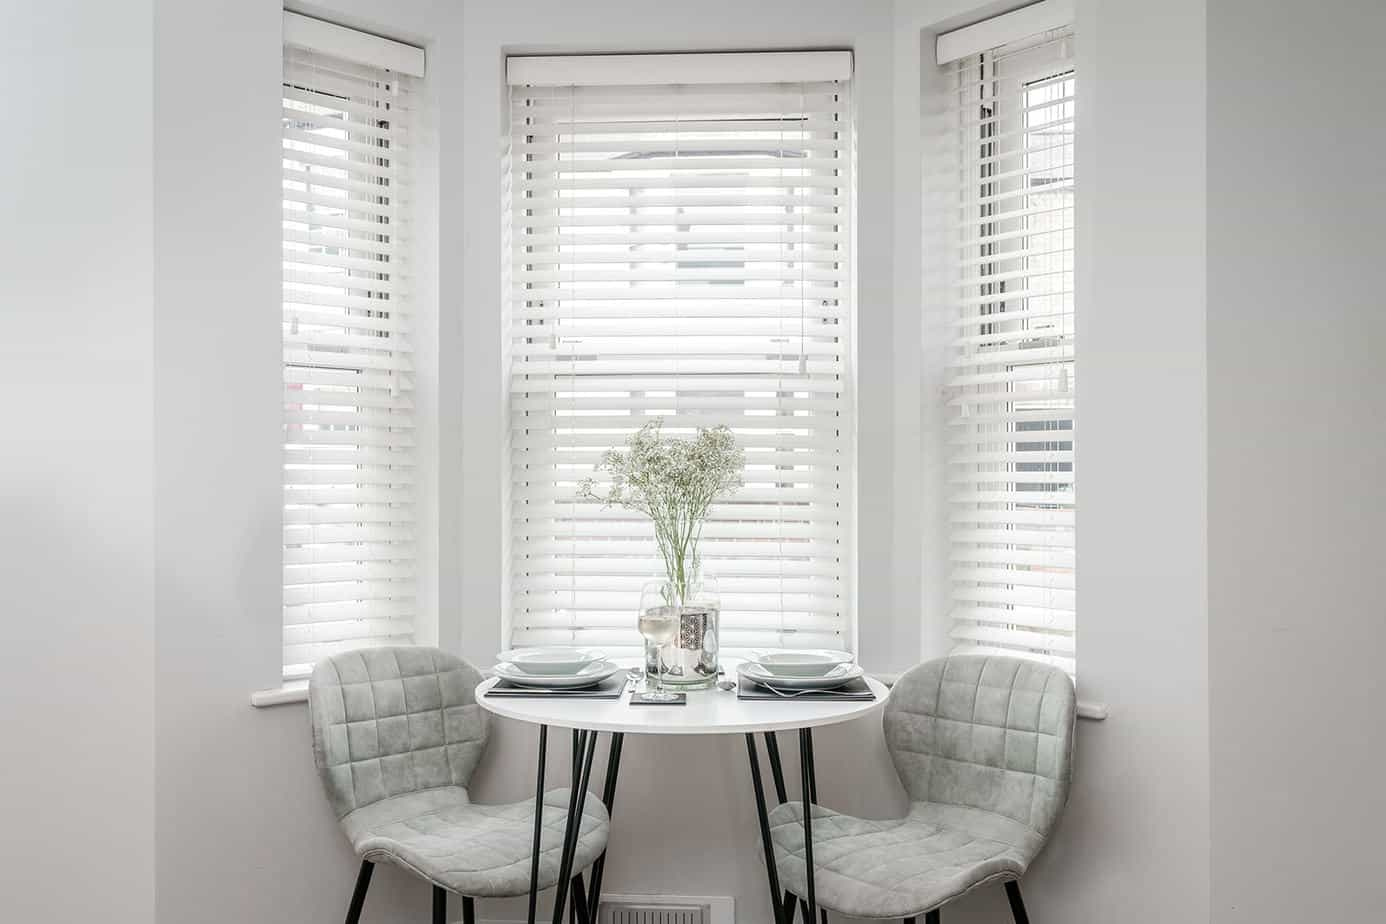 Tailored Stays Victoria Road Serviced Apartment provide a place to sit, eat and unwind after a busy day.